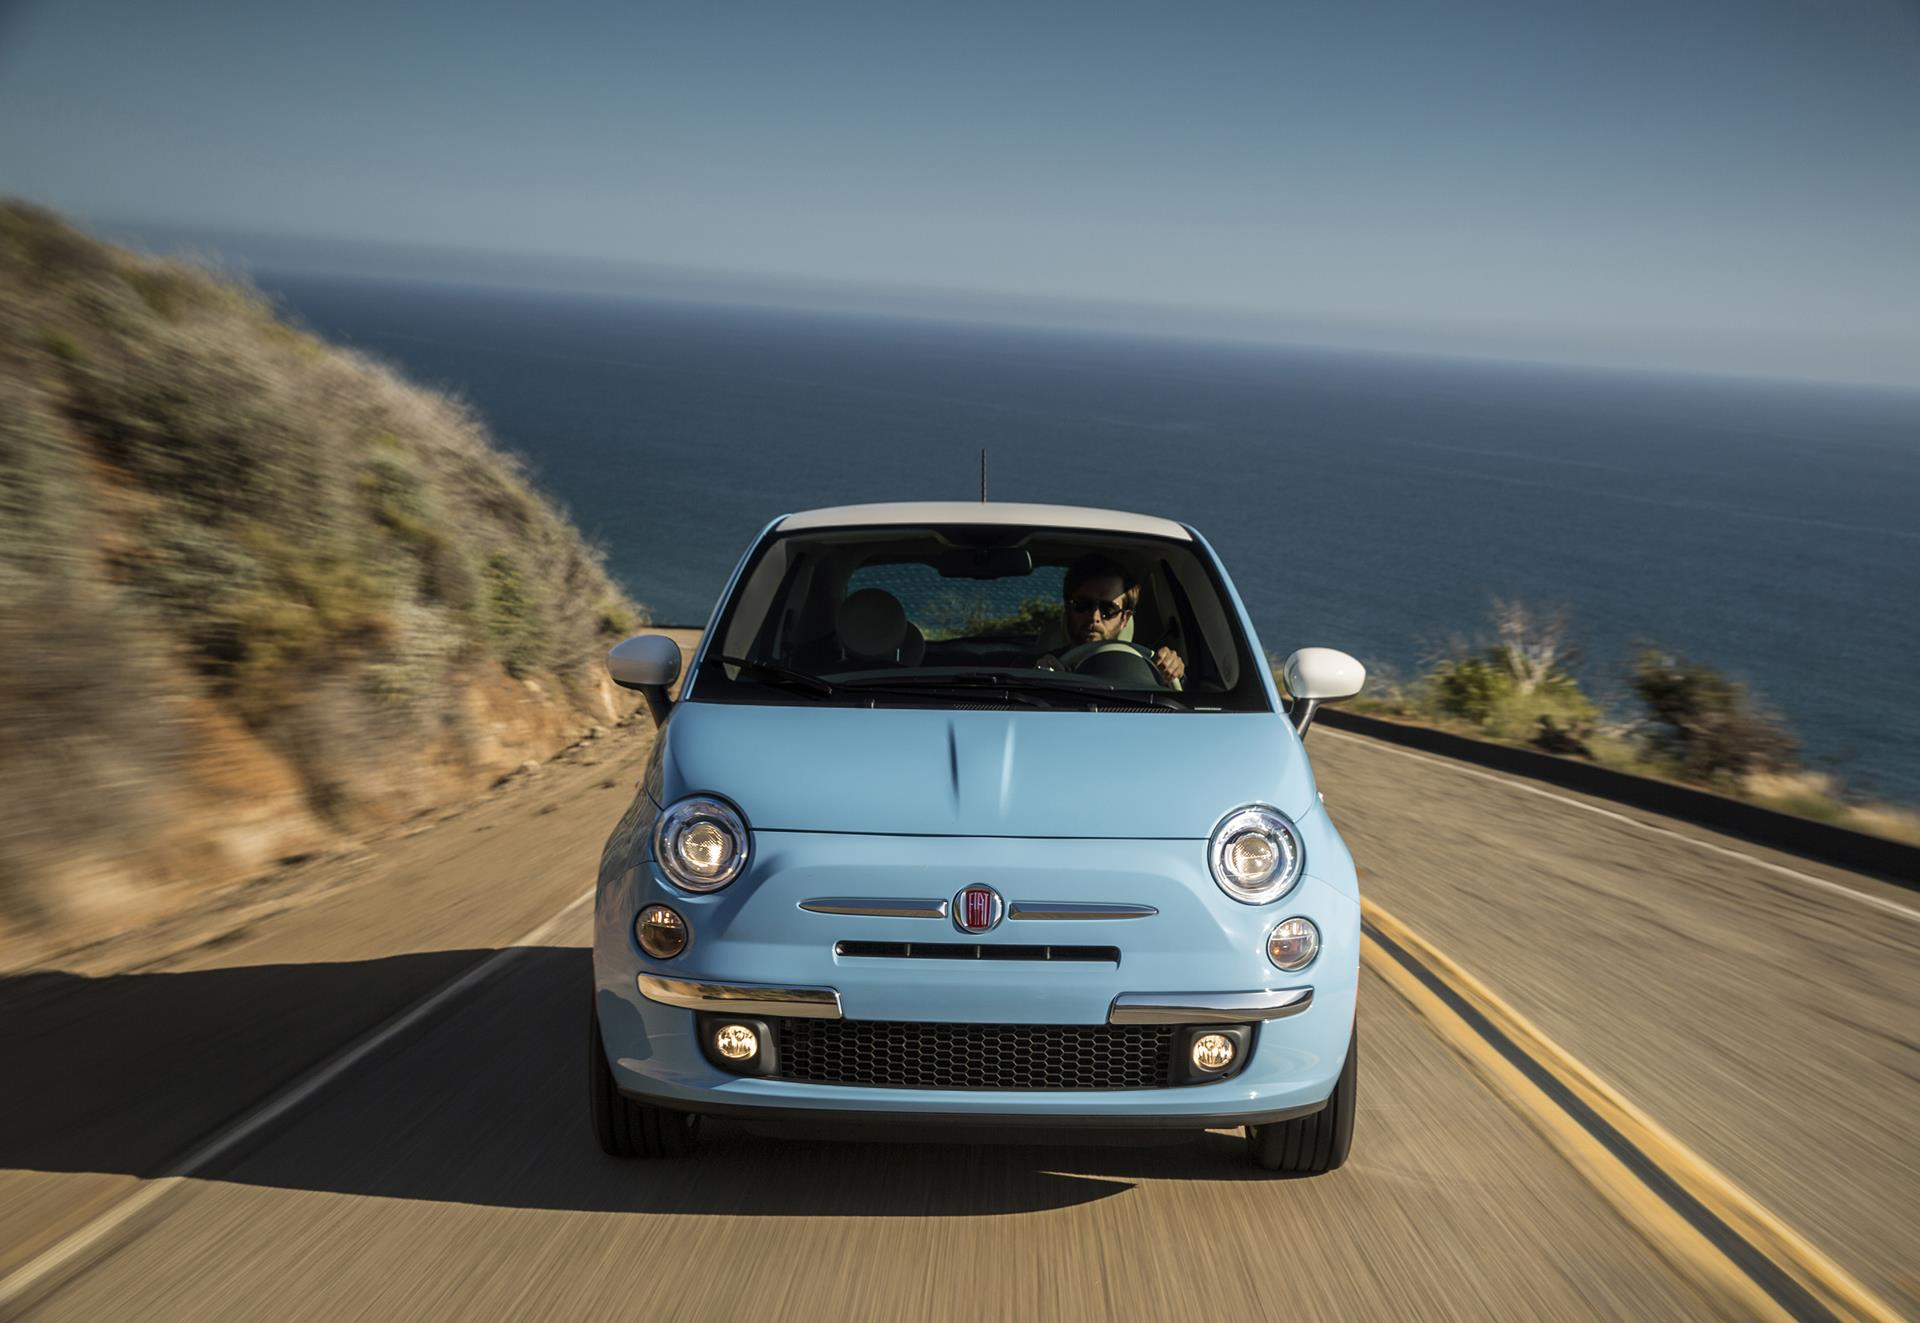 2015 fiat 500 1957 edition cabrio technical specifications and data engine dimensions and. Black Bedroom Furniture Sets. Home Design Ideas